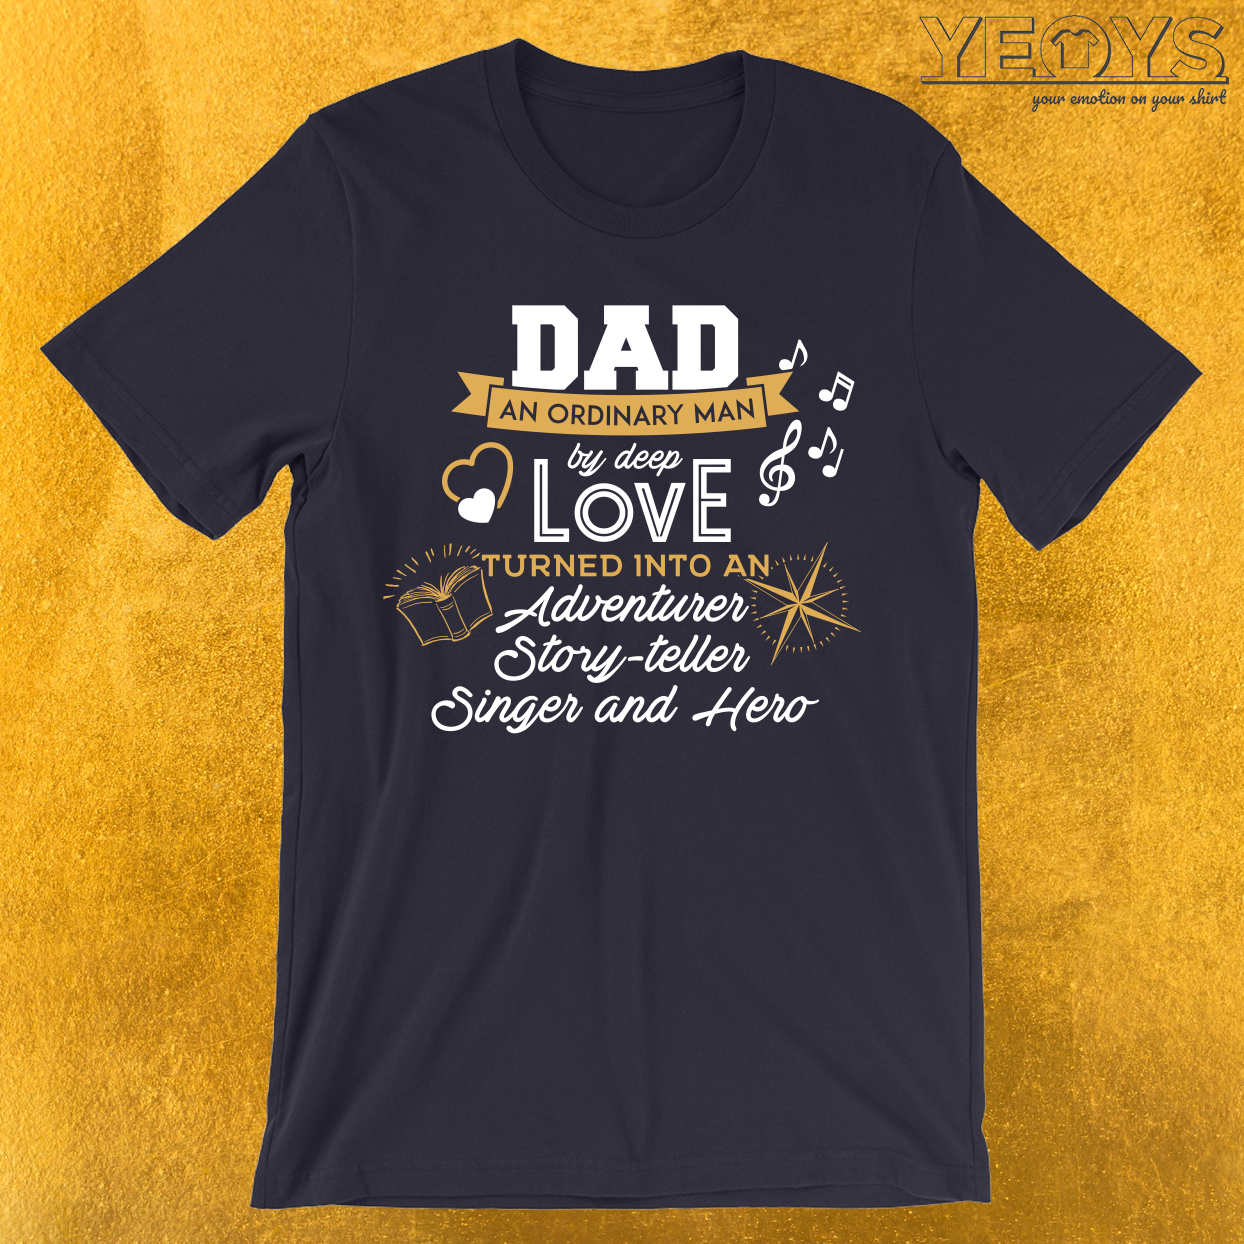 Ordinary Men With Love Turned Into Dad T-Shirt